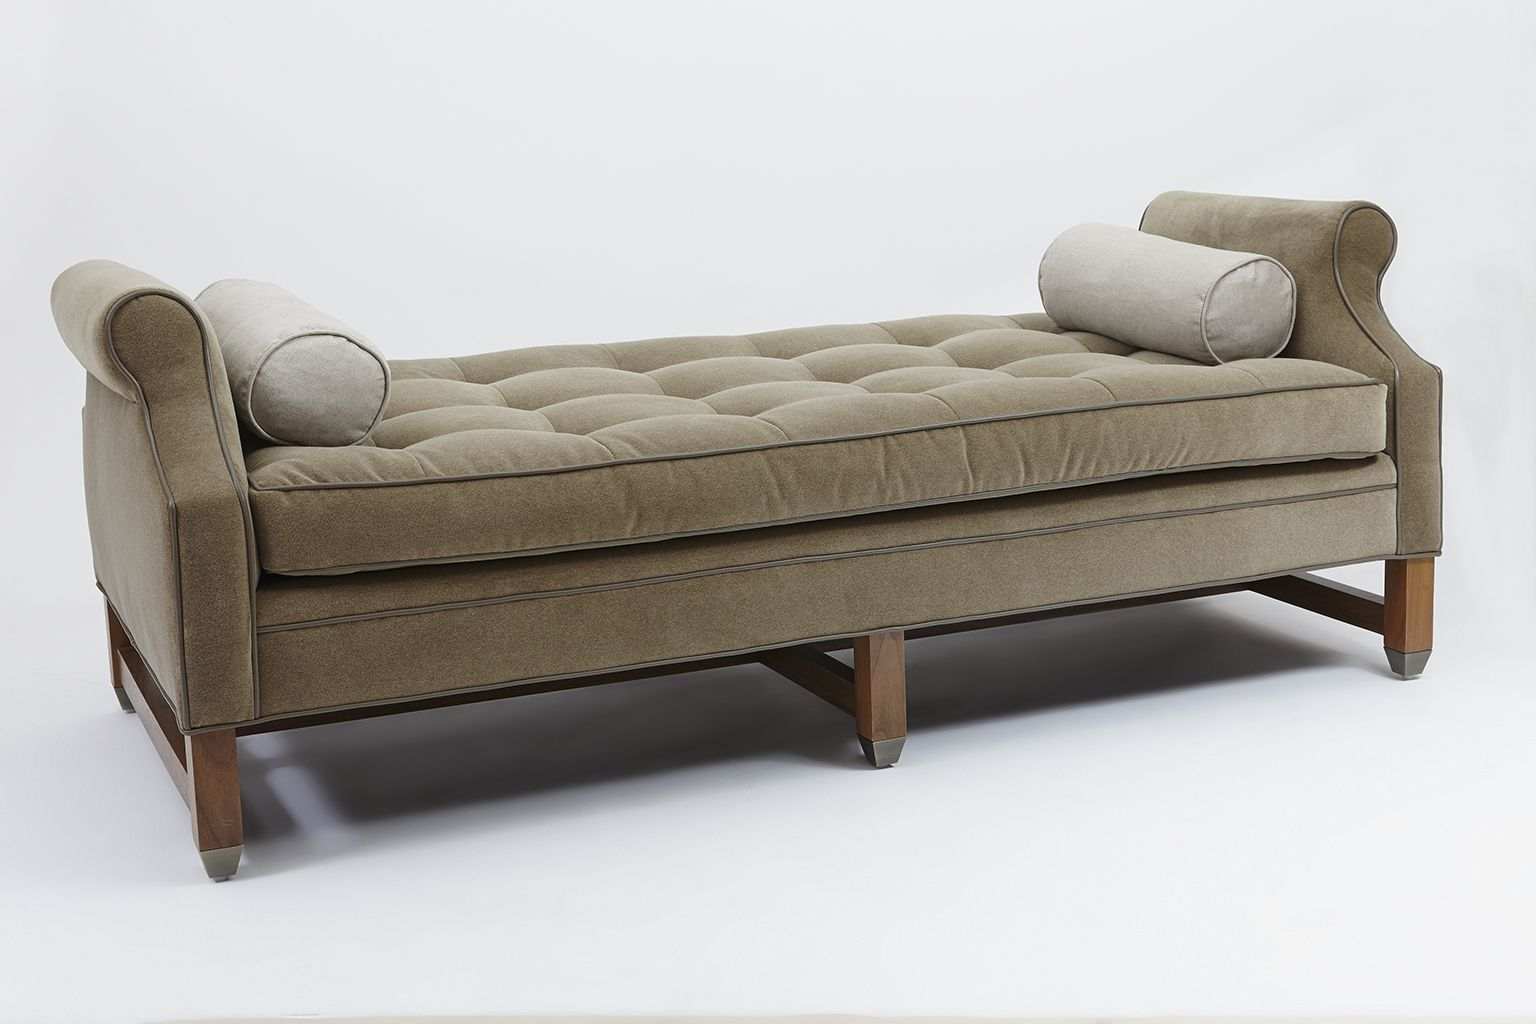 Buy dutch daybed by lawson fenning made to order designer furniture from dering halls collection of mid century modern daybeds